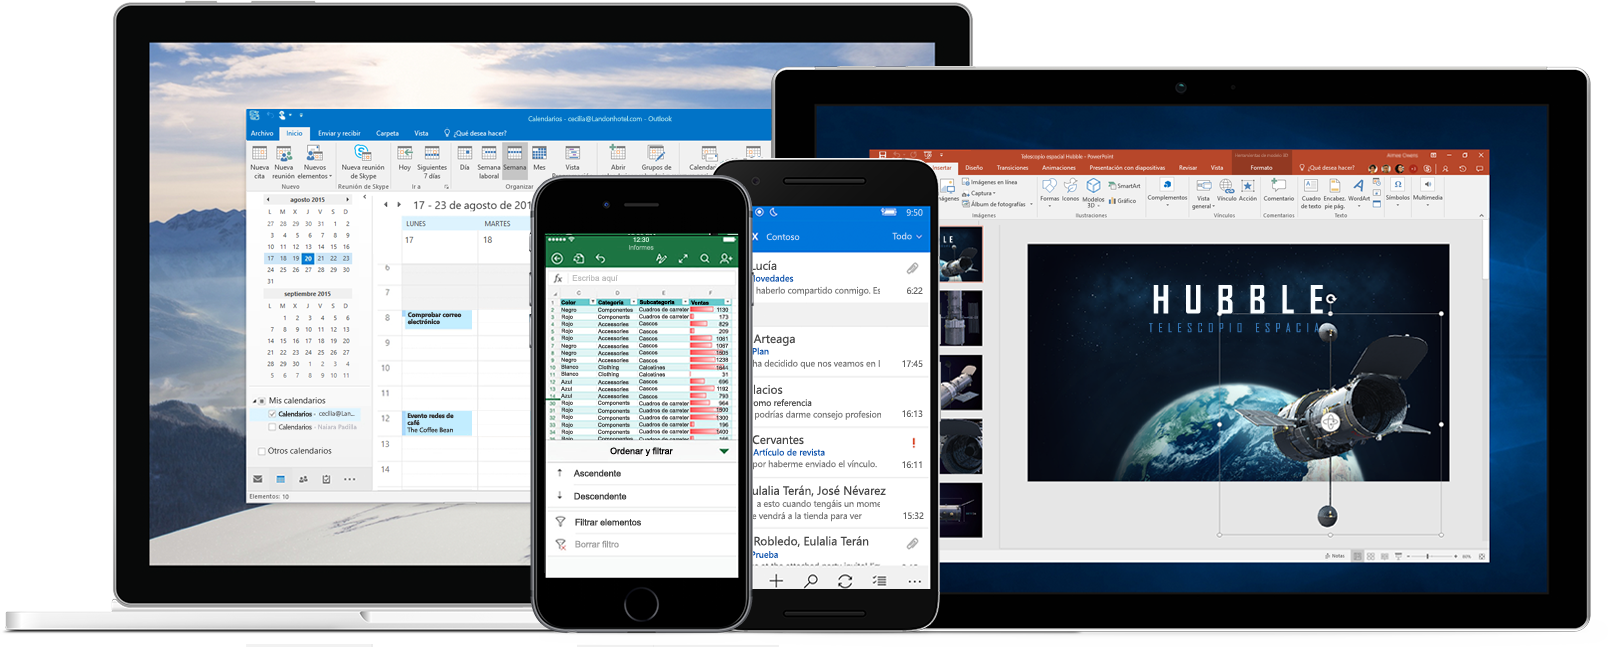 Office 365 gratis, descargue Office 2016 para PC y Mac